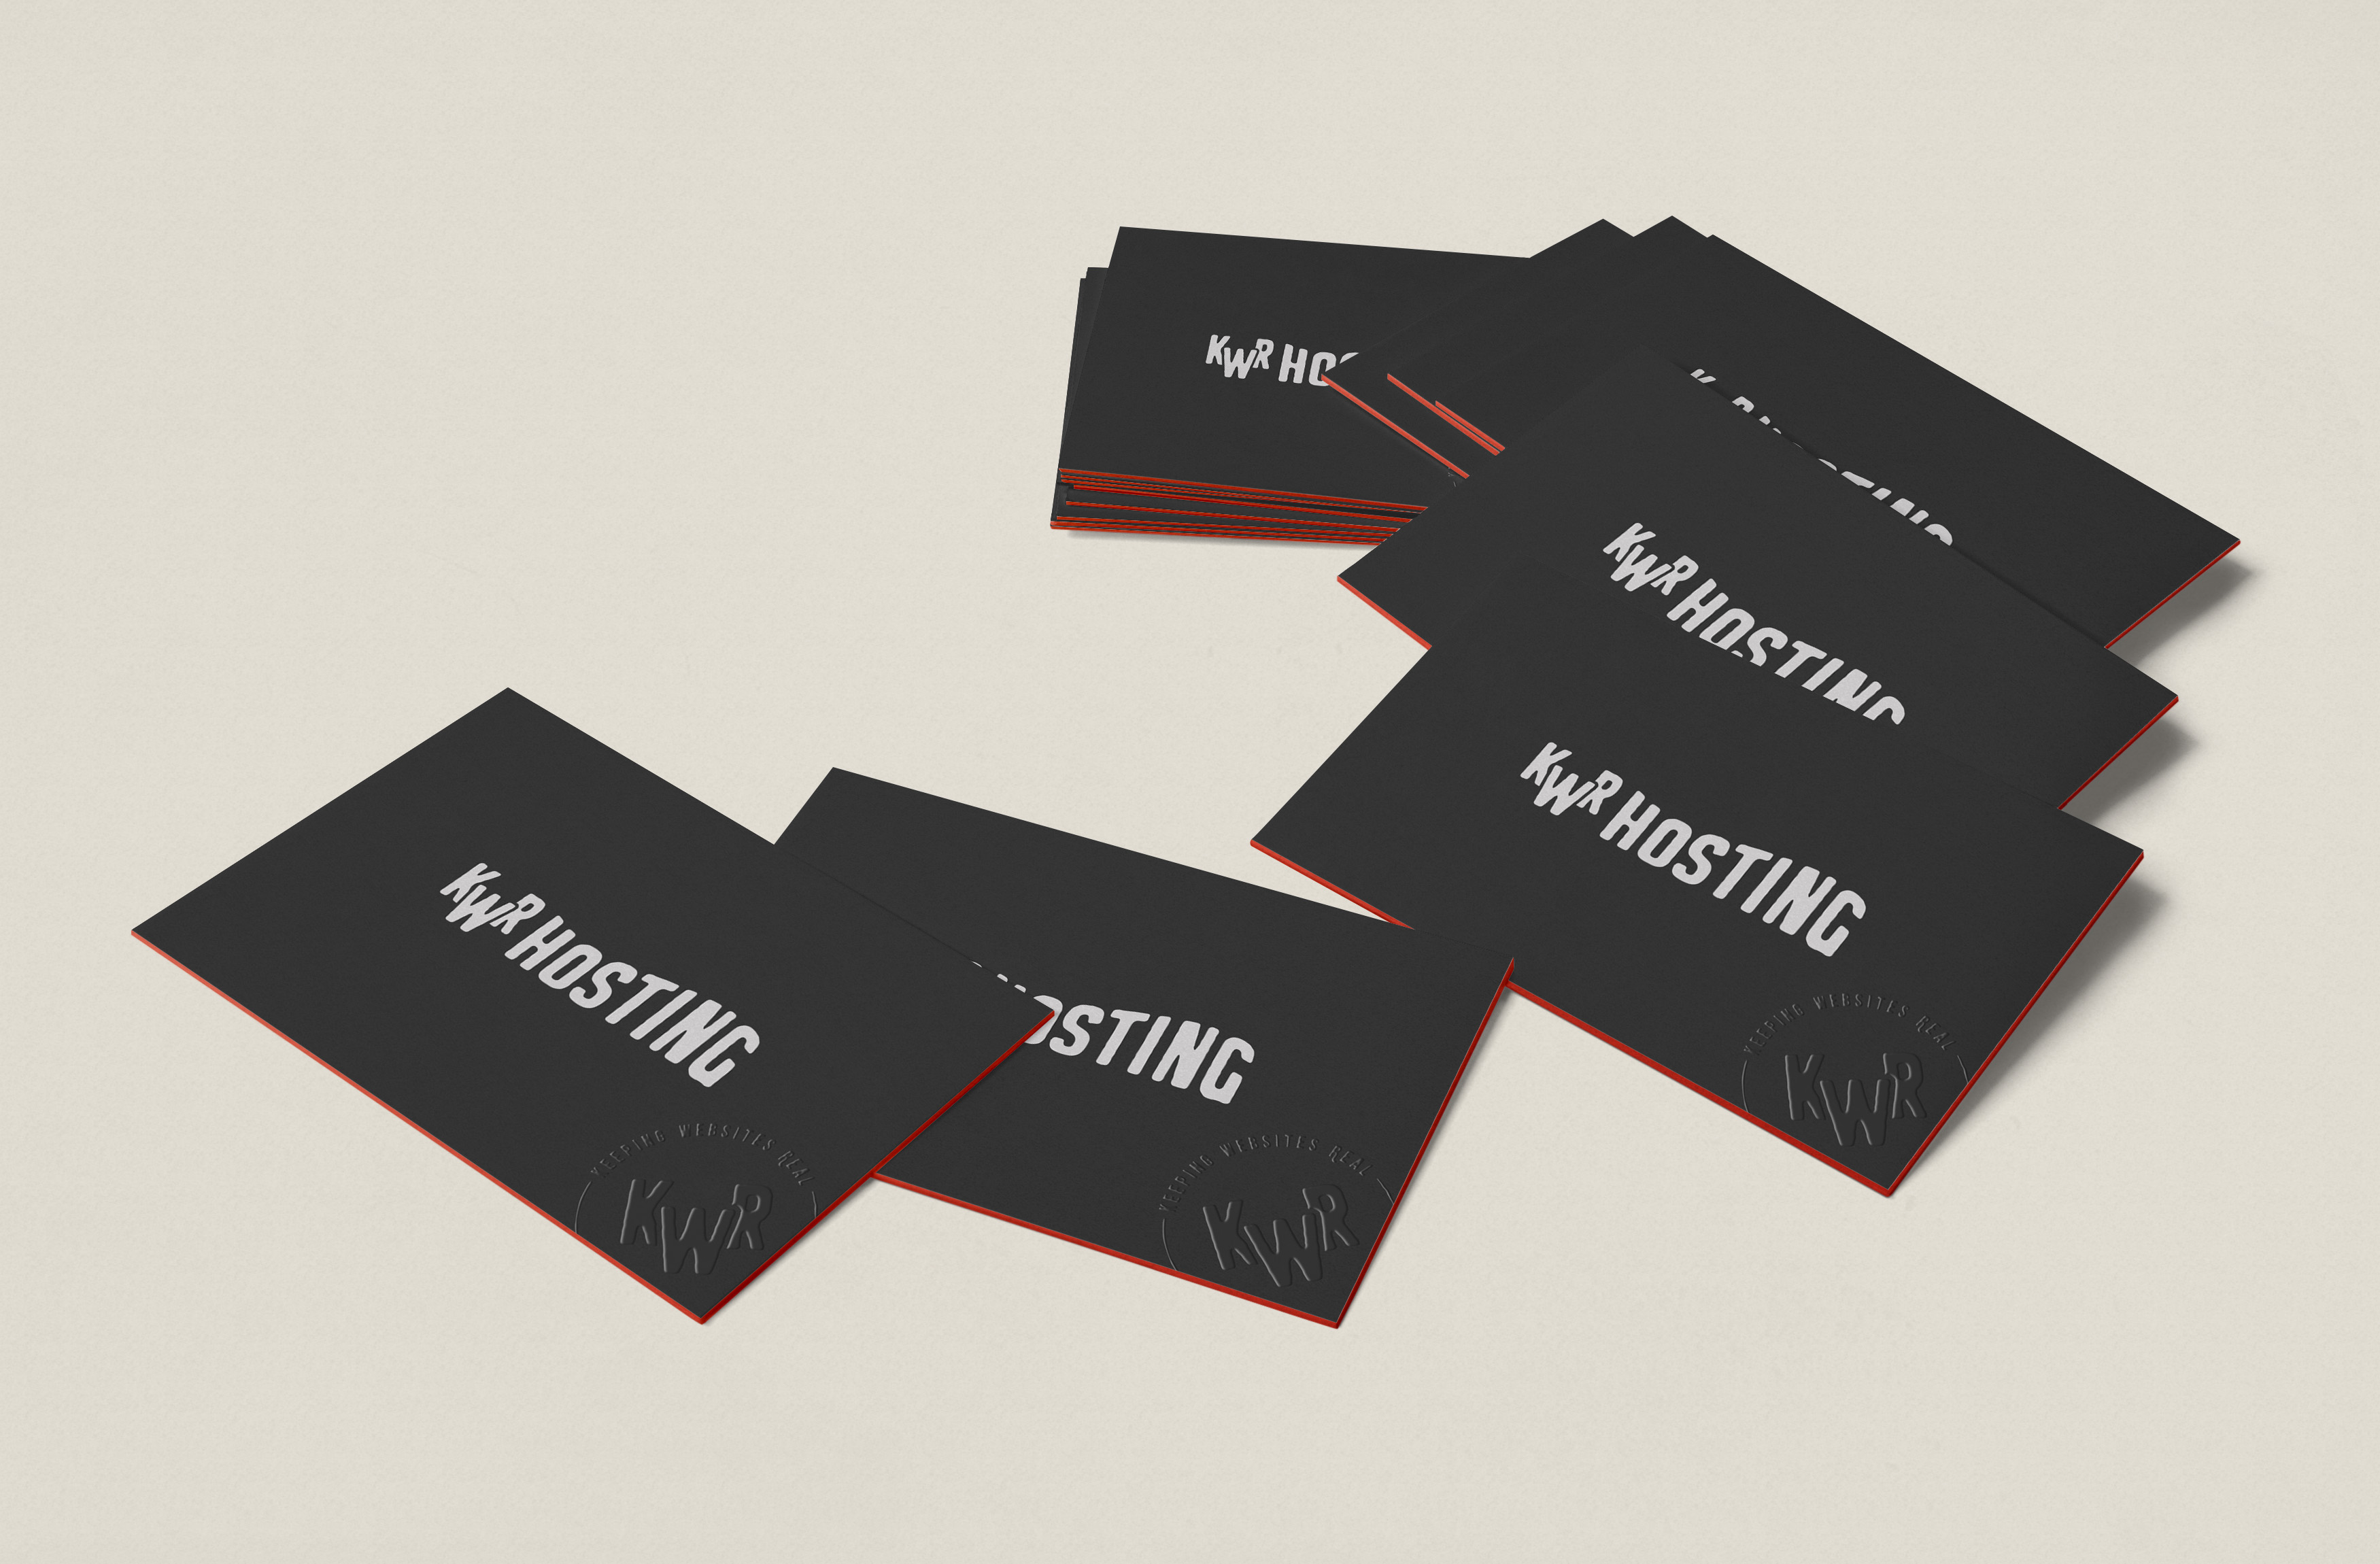 Keeping Websites Real Brand Identity secondary logo business card 70s inspired all caps raised gloss black on black